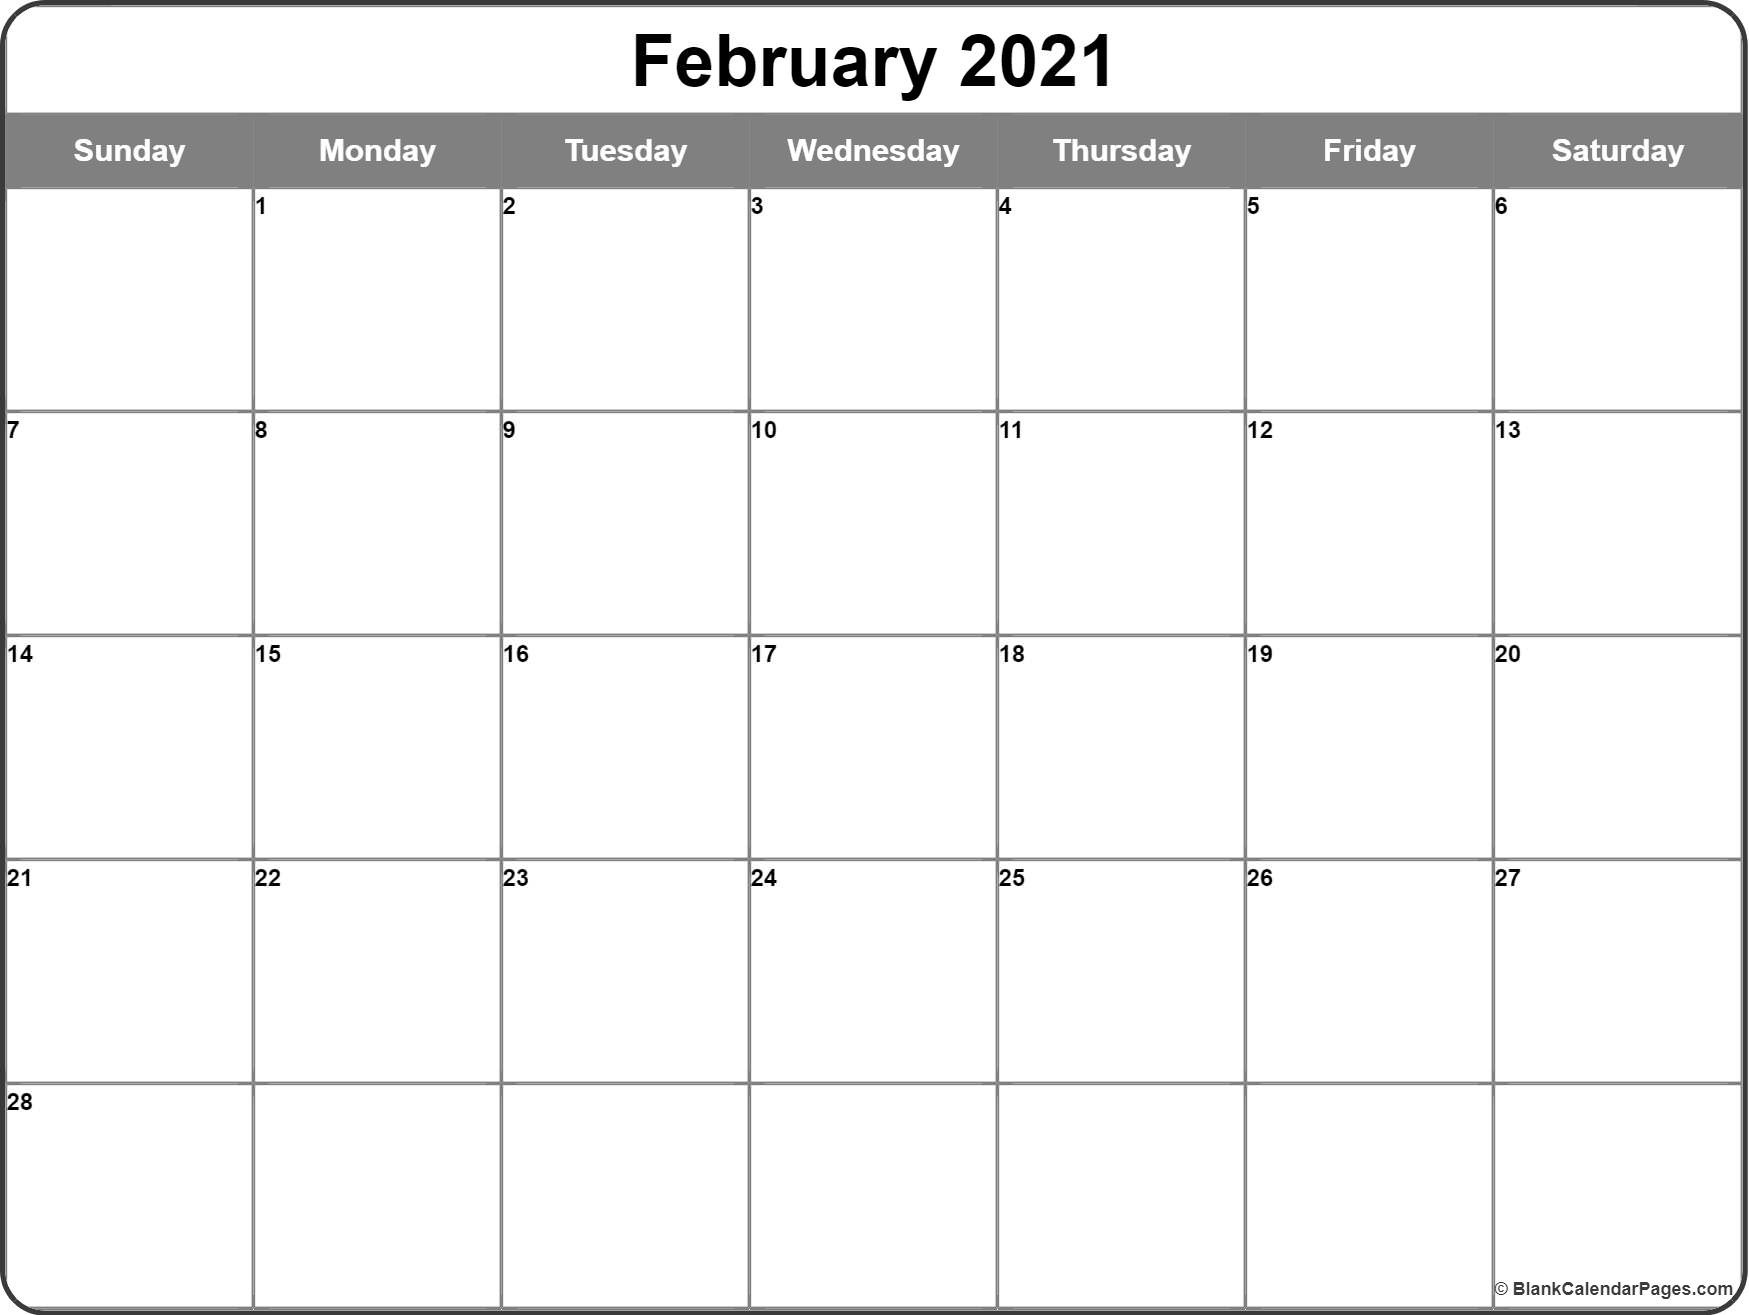 2021 Print Free Calendars Without Downloading   Calendar  Blank Monthly Calendar Printable Free Without Downloading